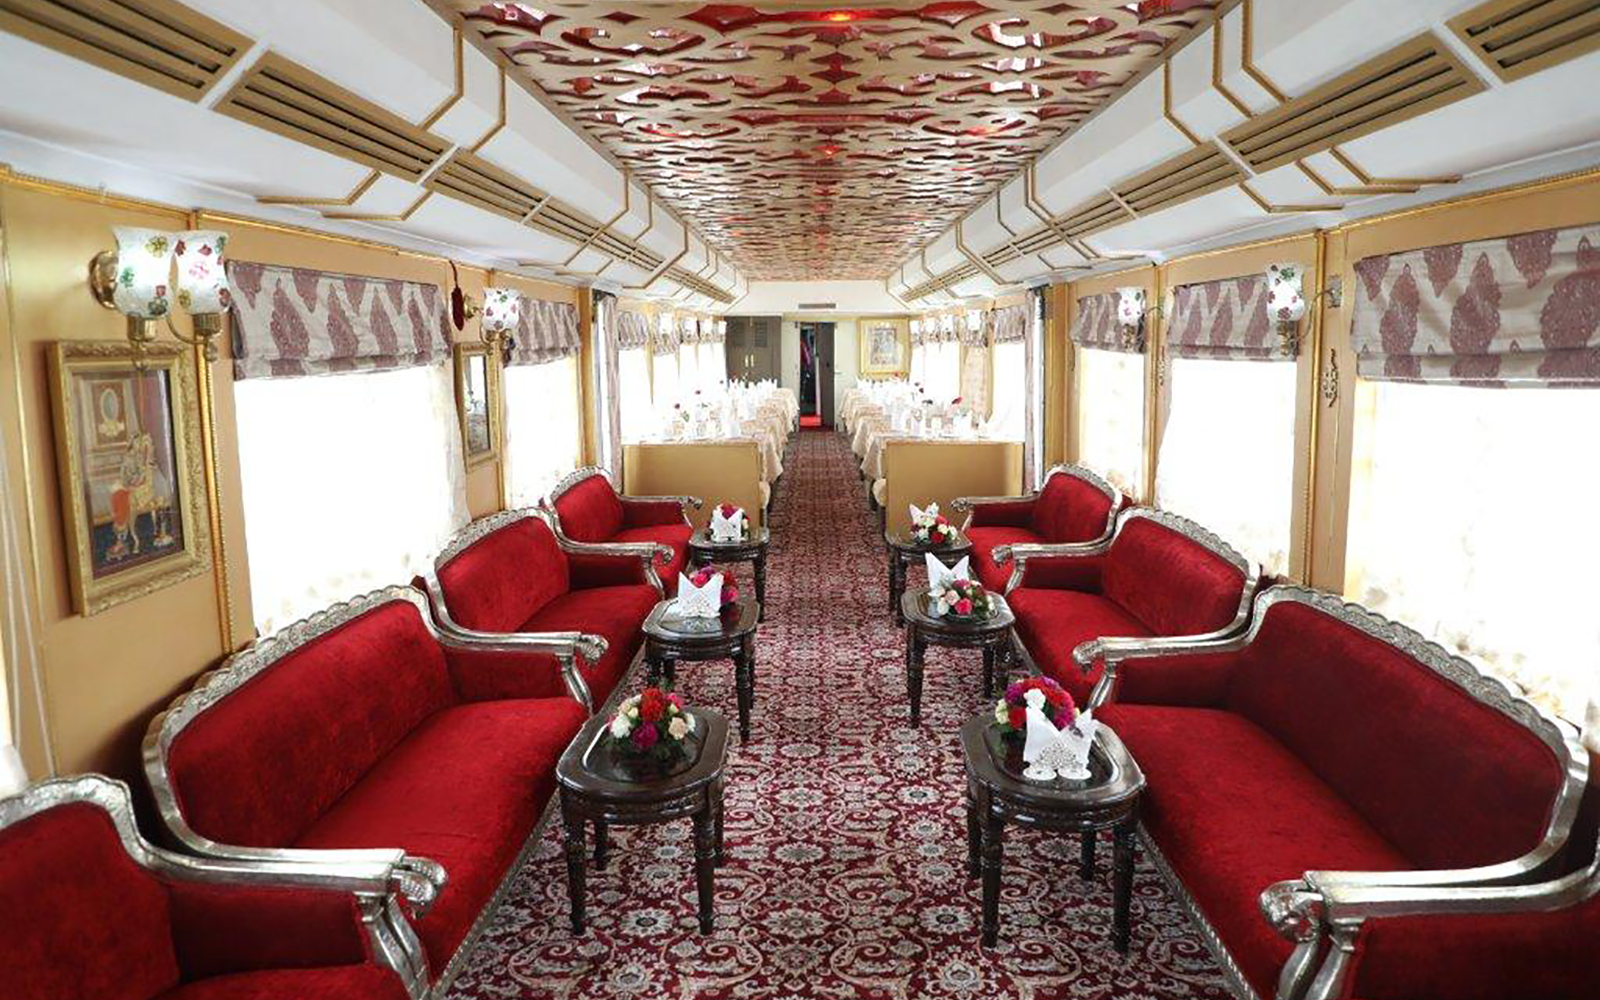 On board the Palace on Wheels luxury train